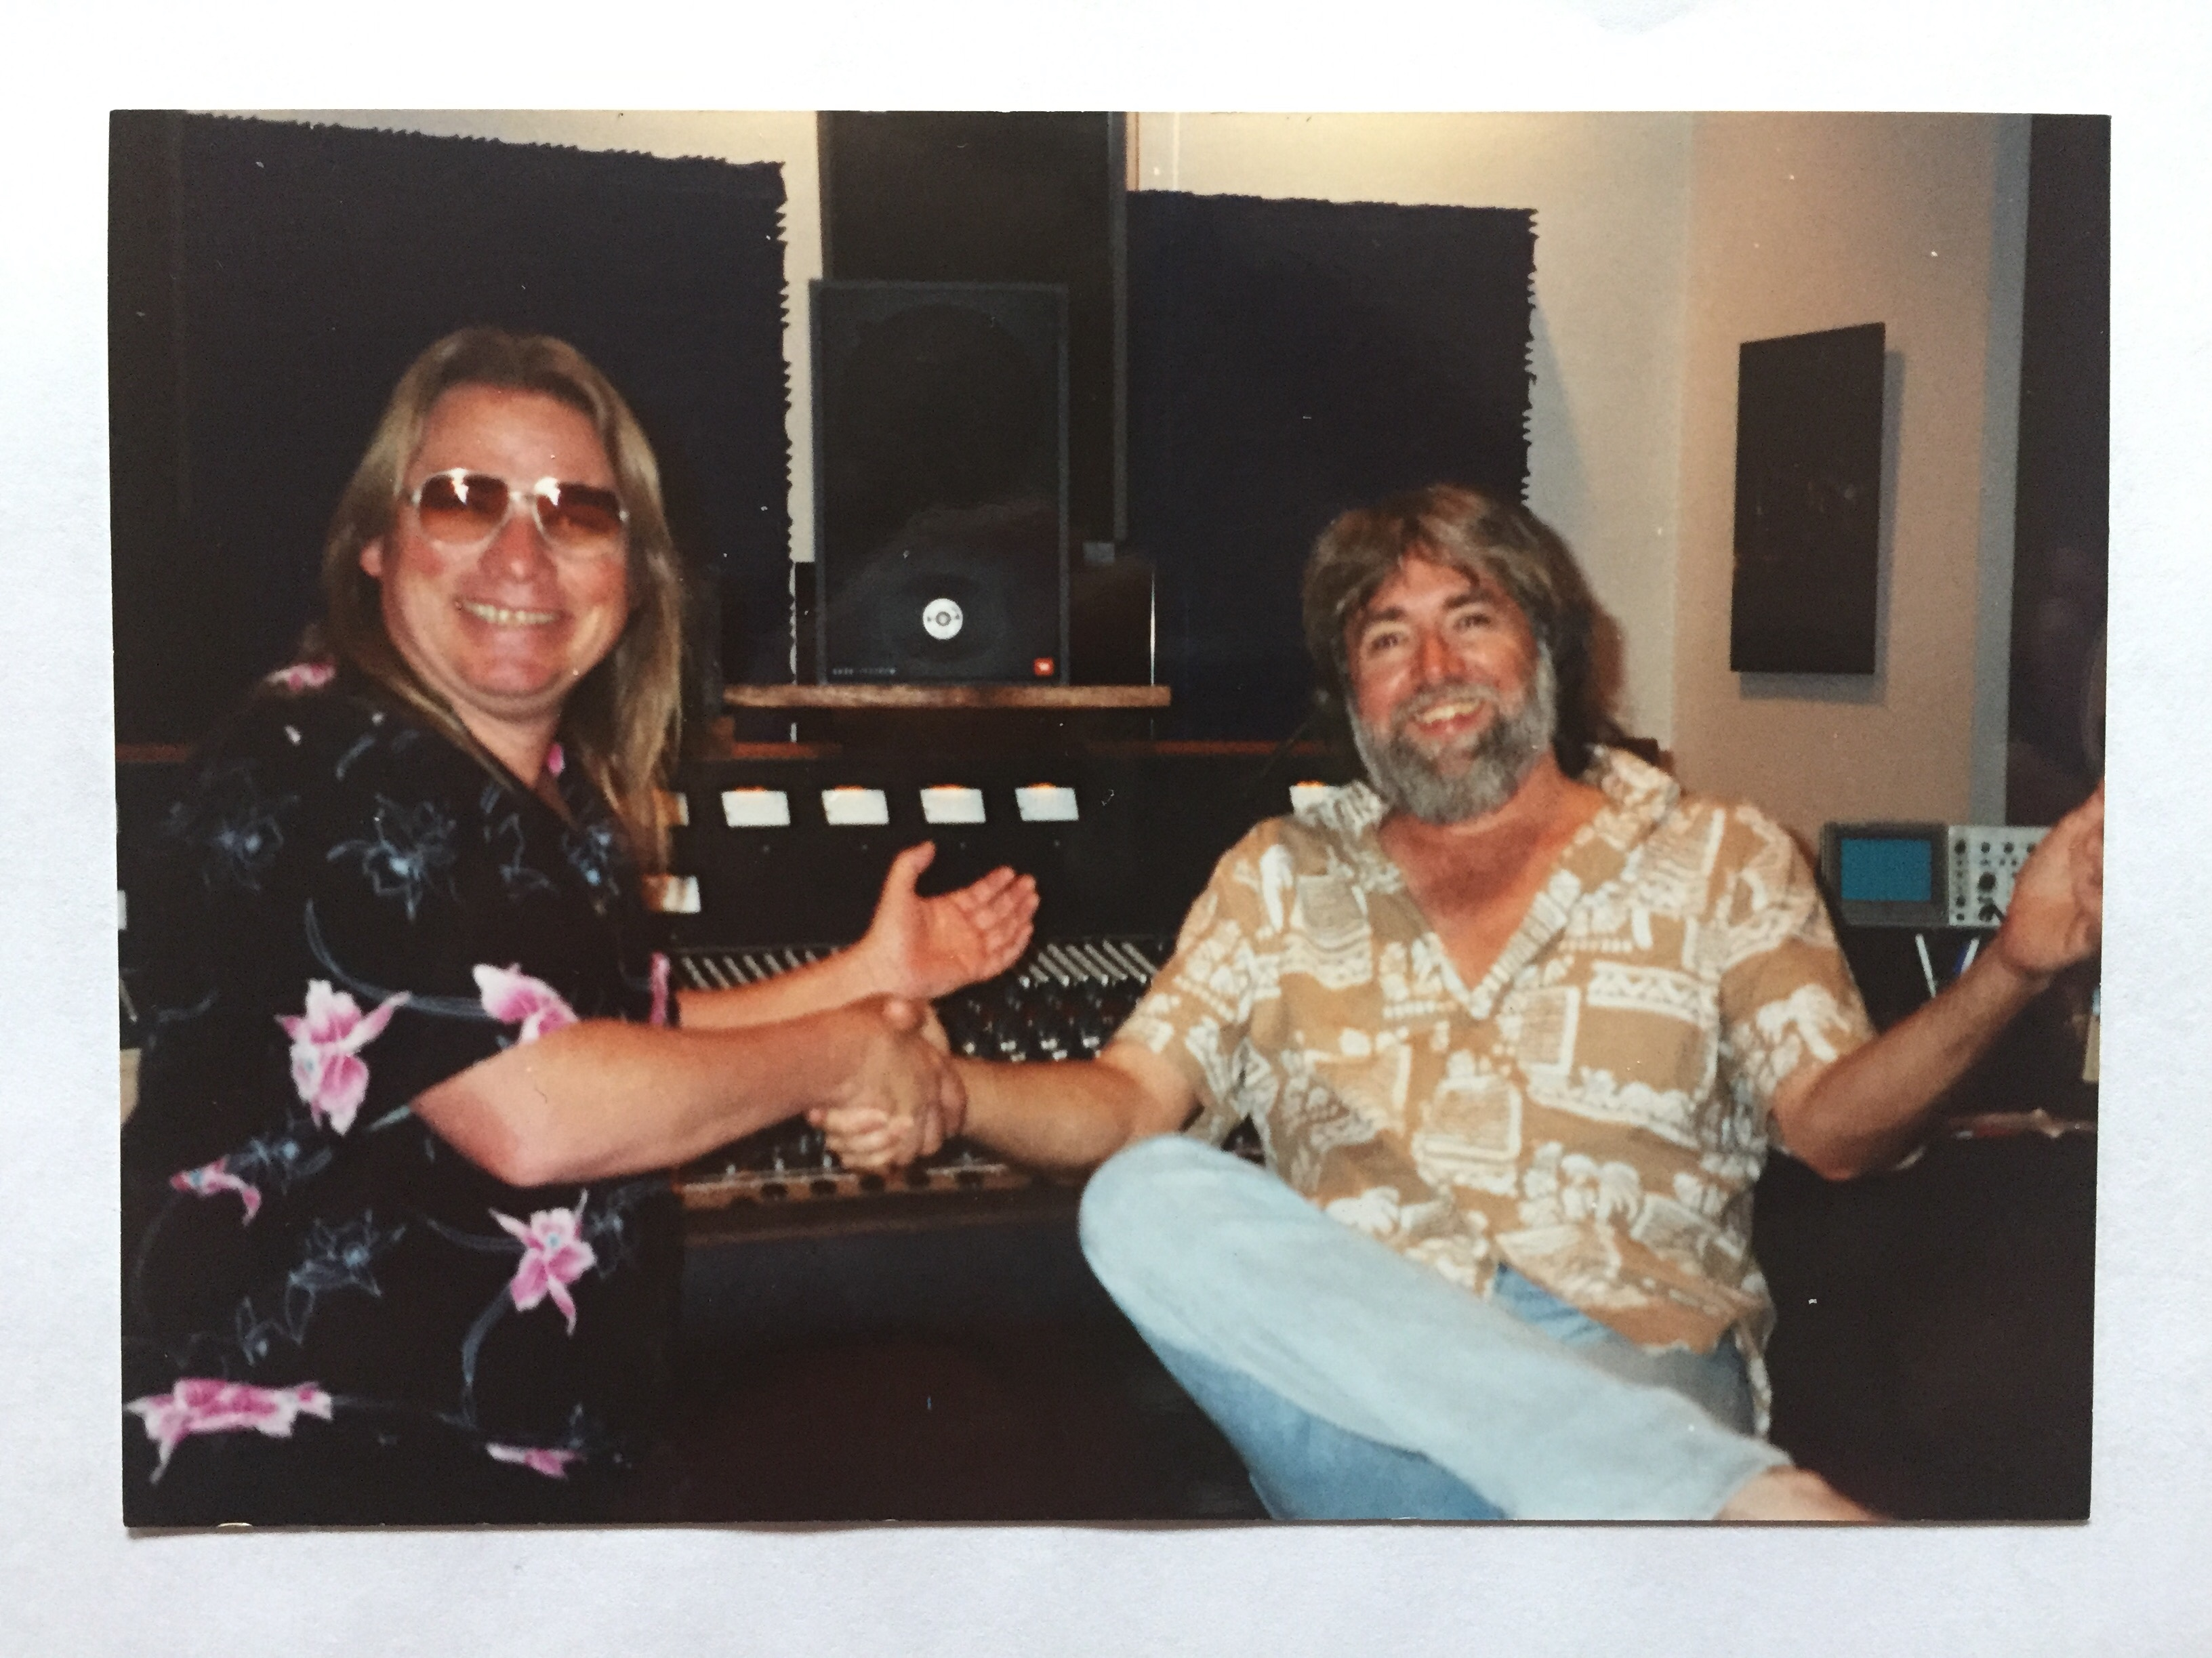 merrell_and_bill_final_session_after_sending_demos_to_label.jpg